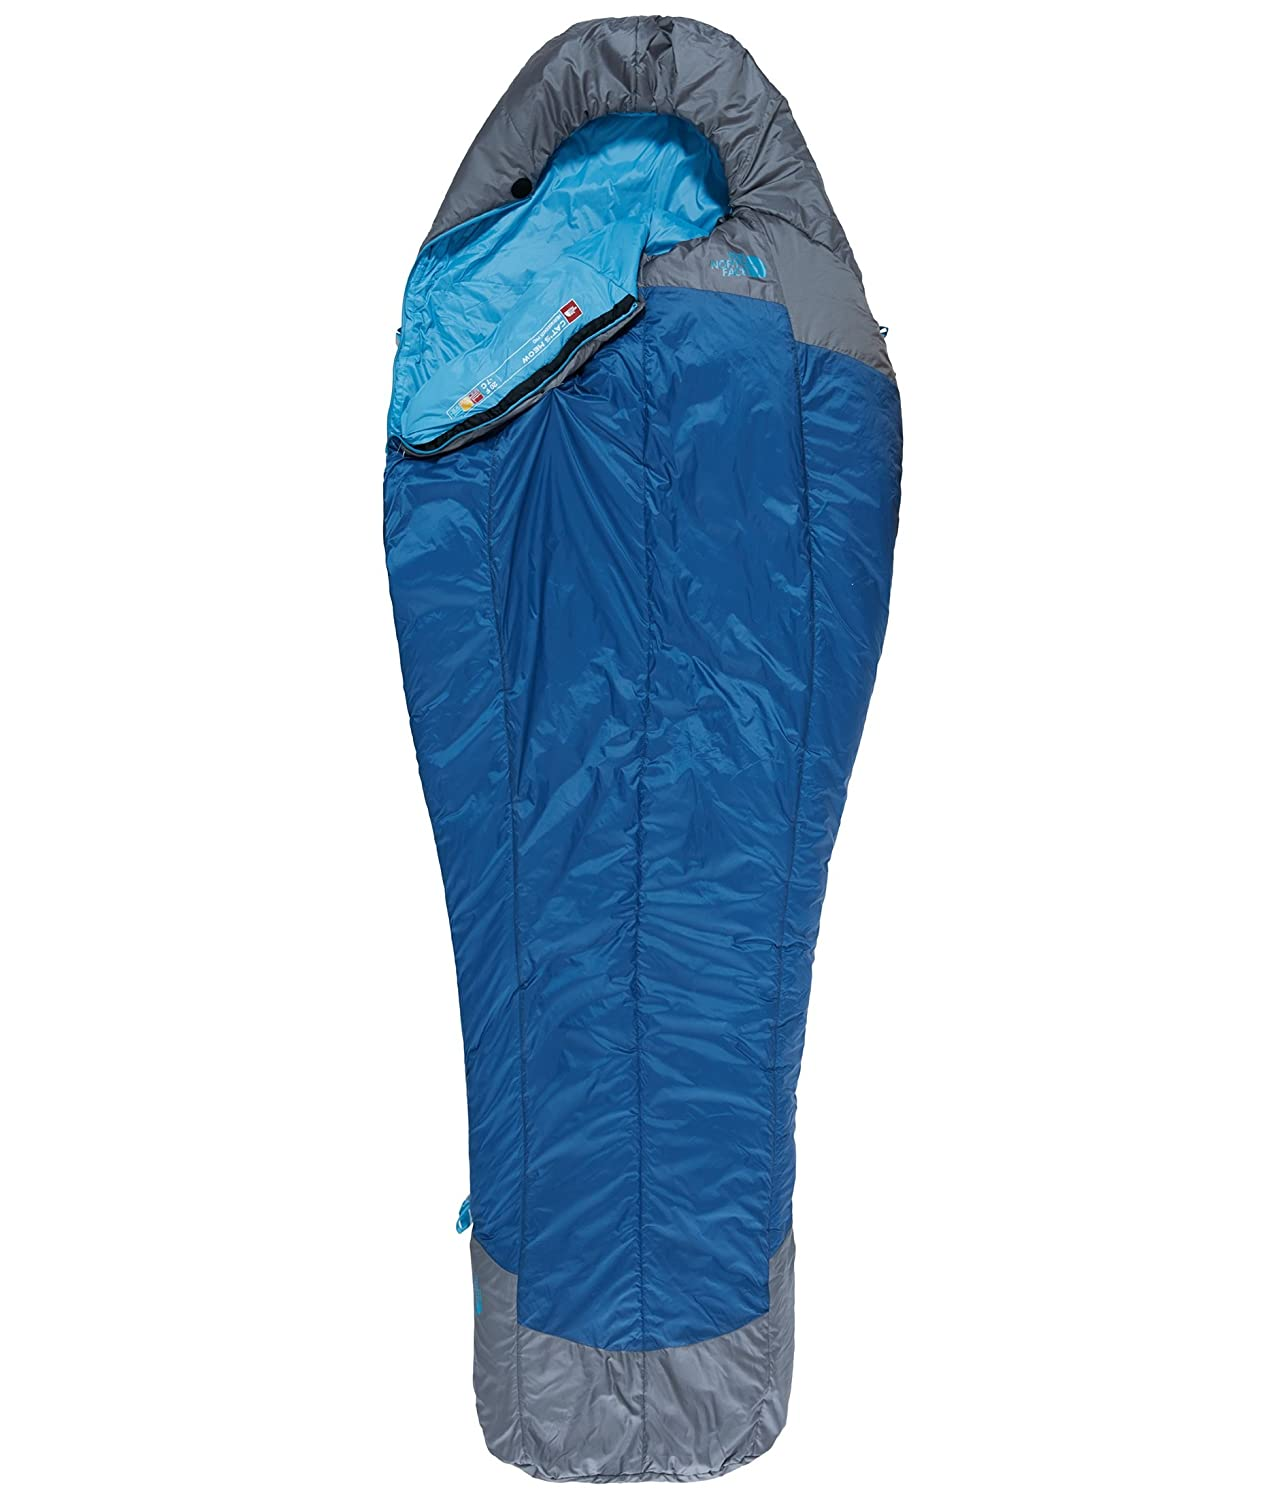 THE NORTH FACE Schlafsack Cat's Meow